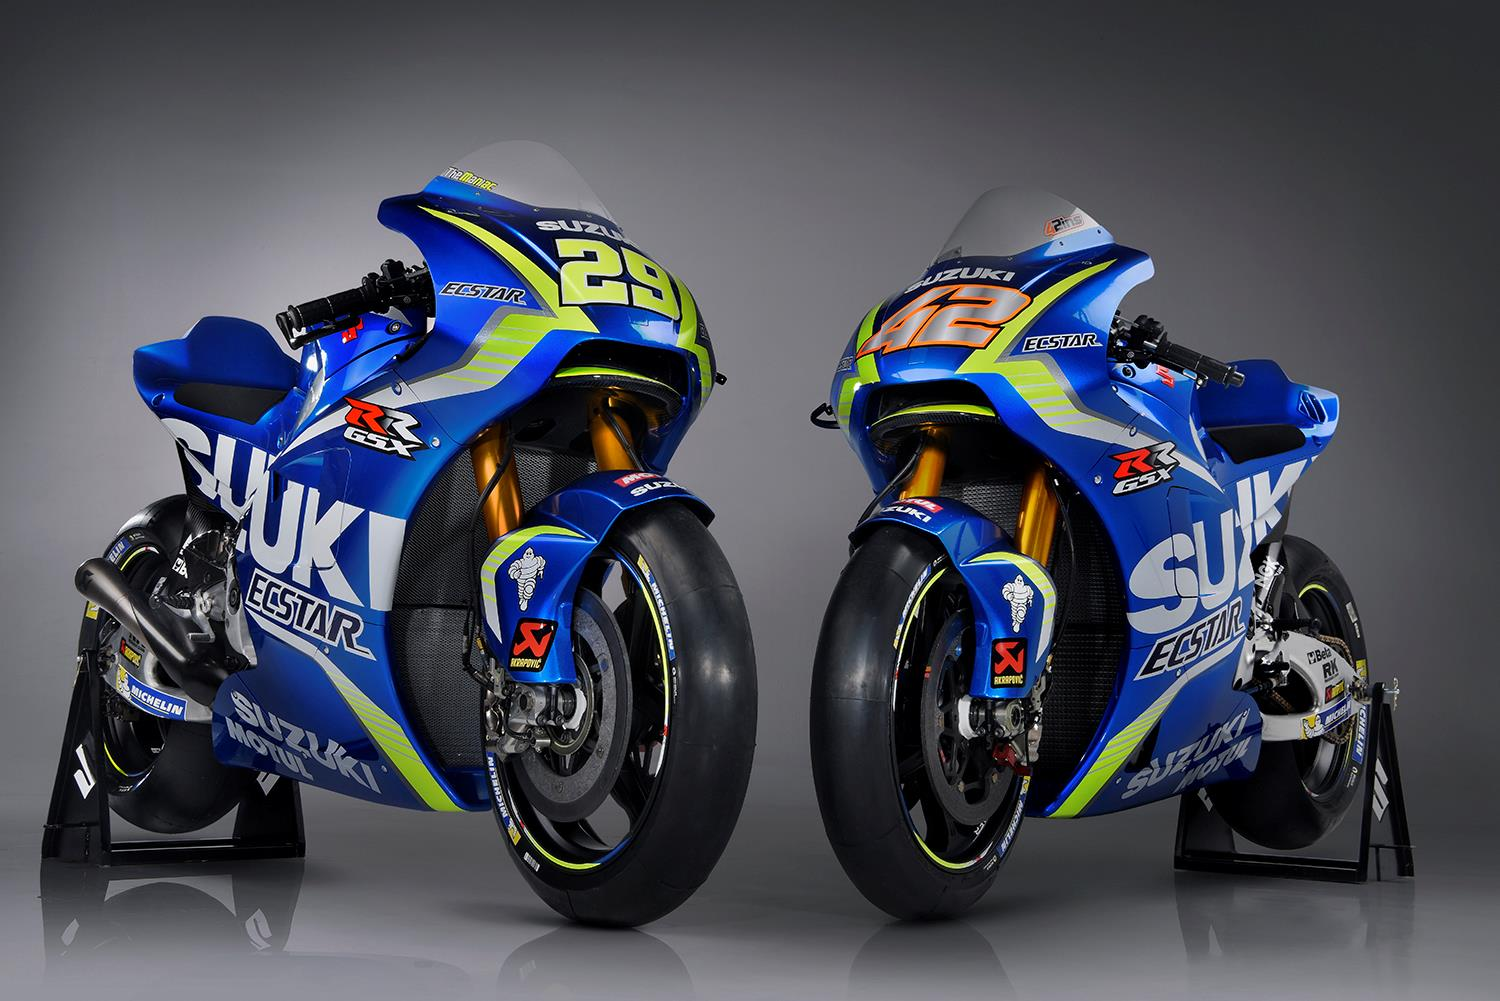 motogp suzuki uncover 2017 machine ahead of sepang test mcn. Black Bedroom Furniture Sets. Home Design Ideas